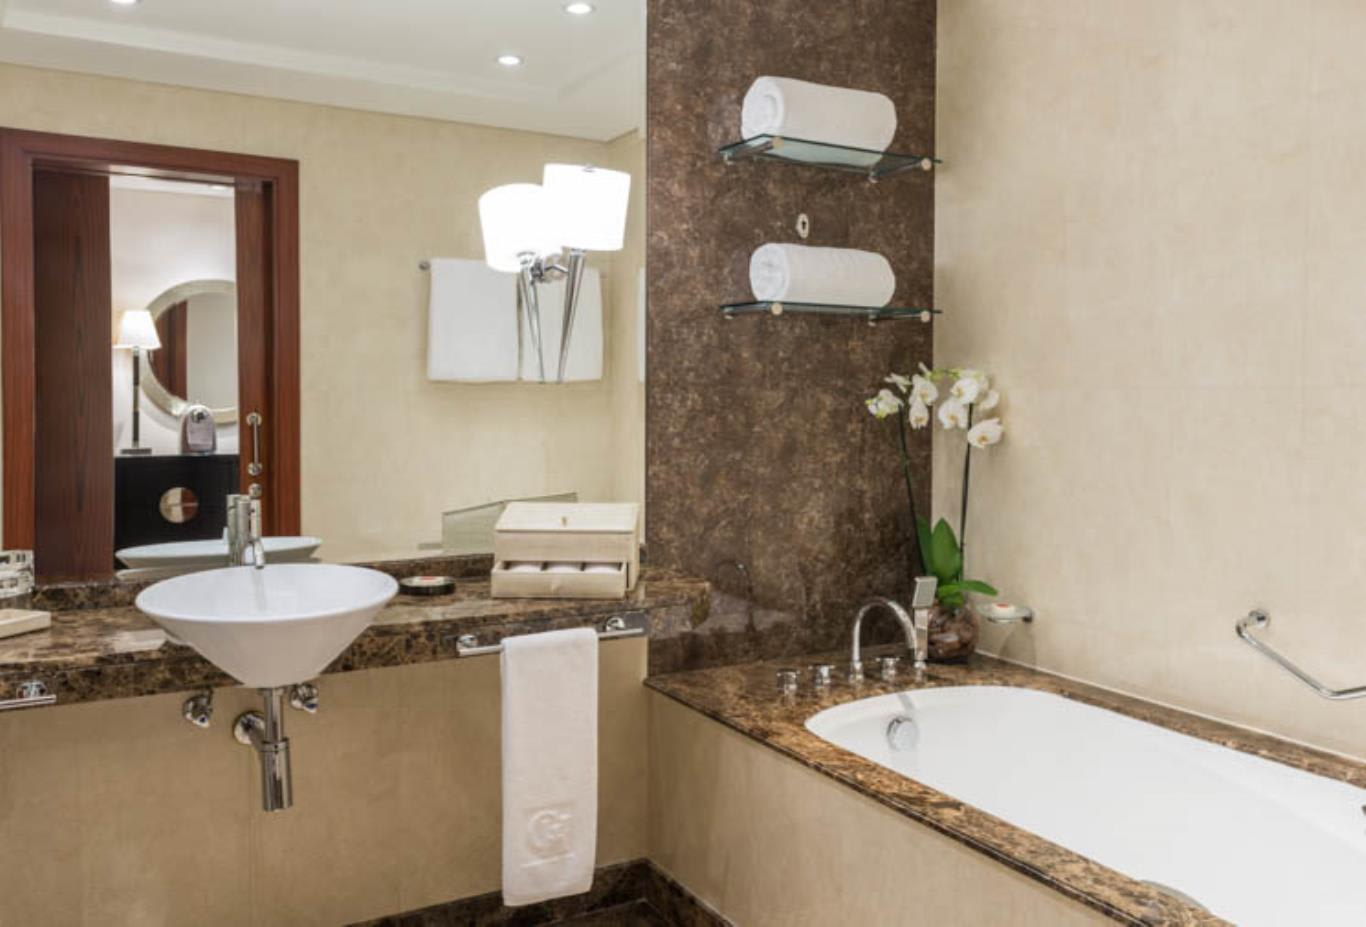 Premier Guest Room bathroom